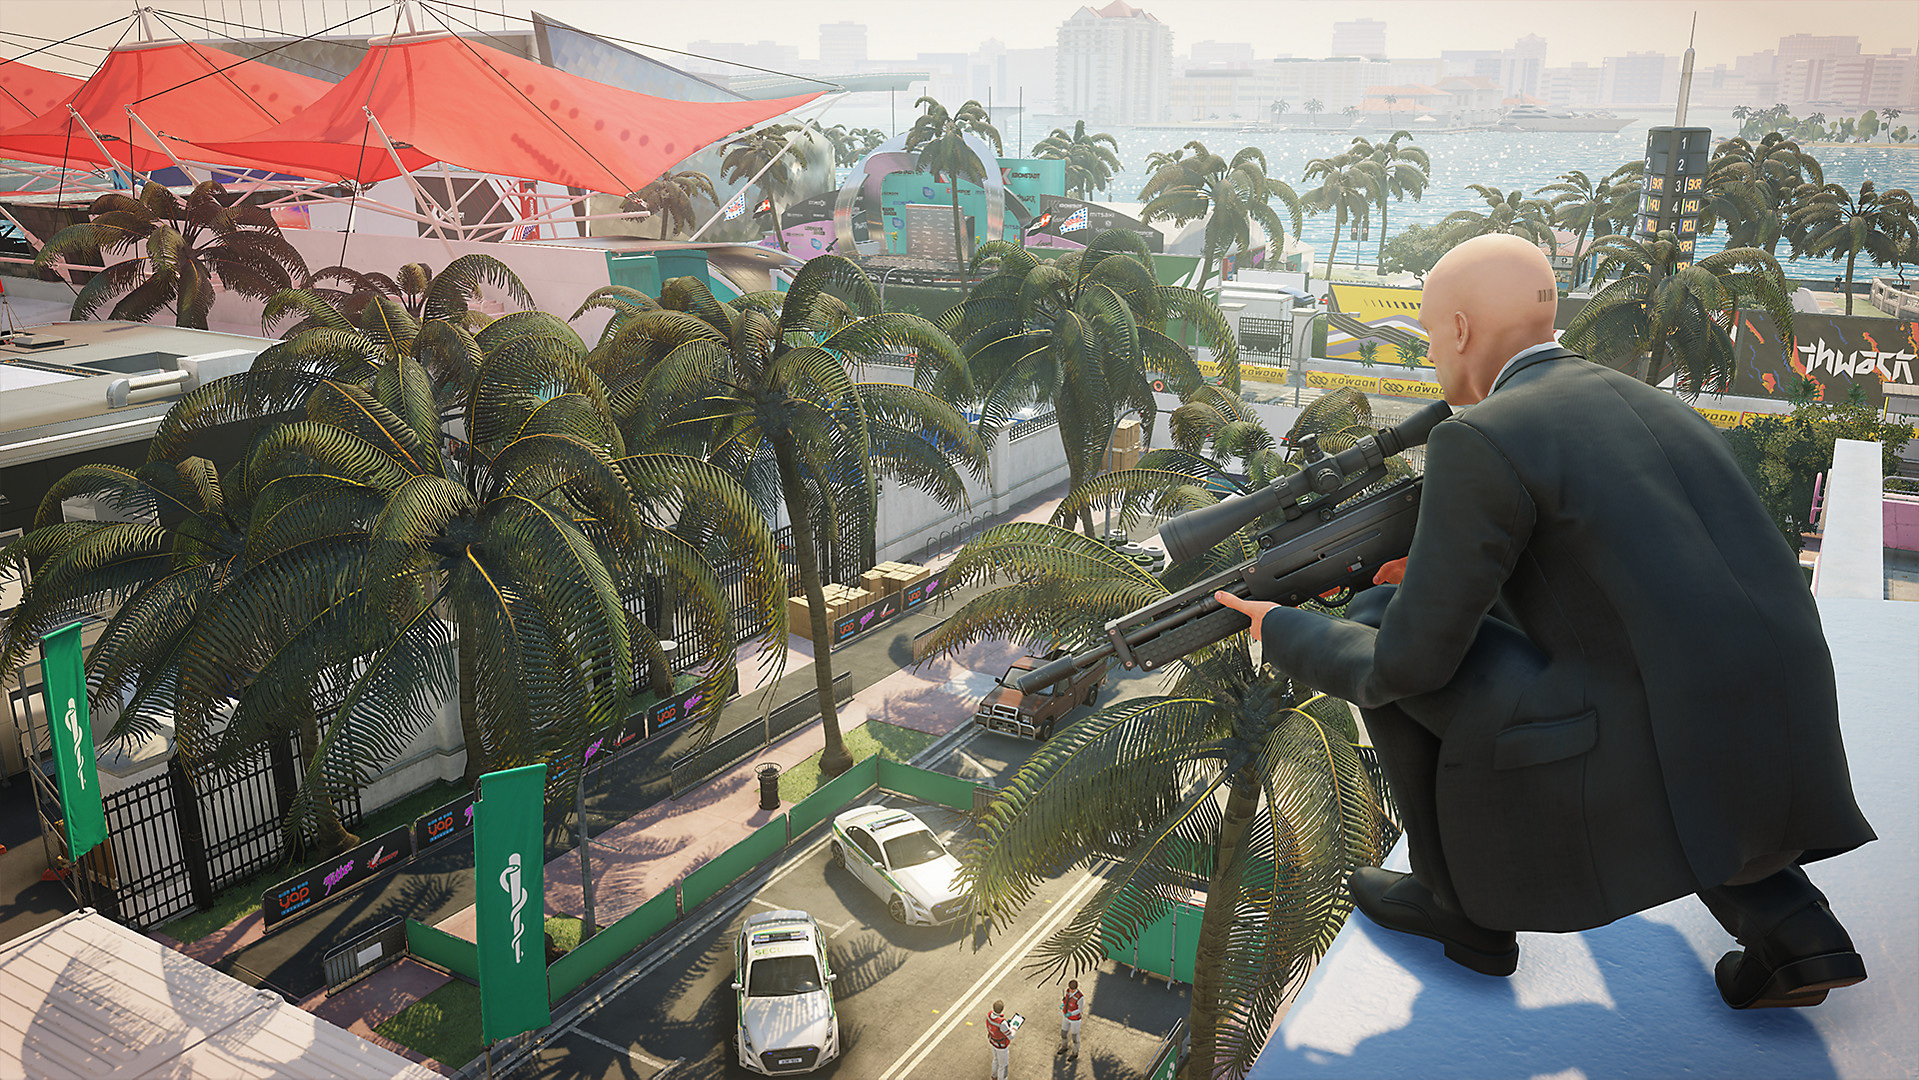 hitman-2-screen-04-ps4-us-11jun18?$nativ